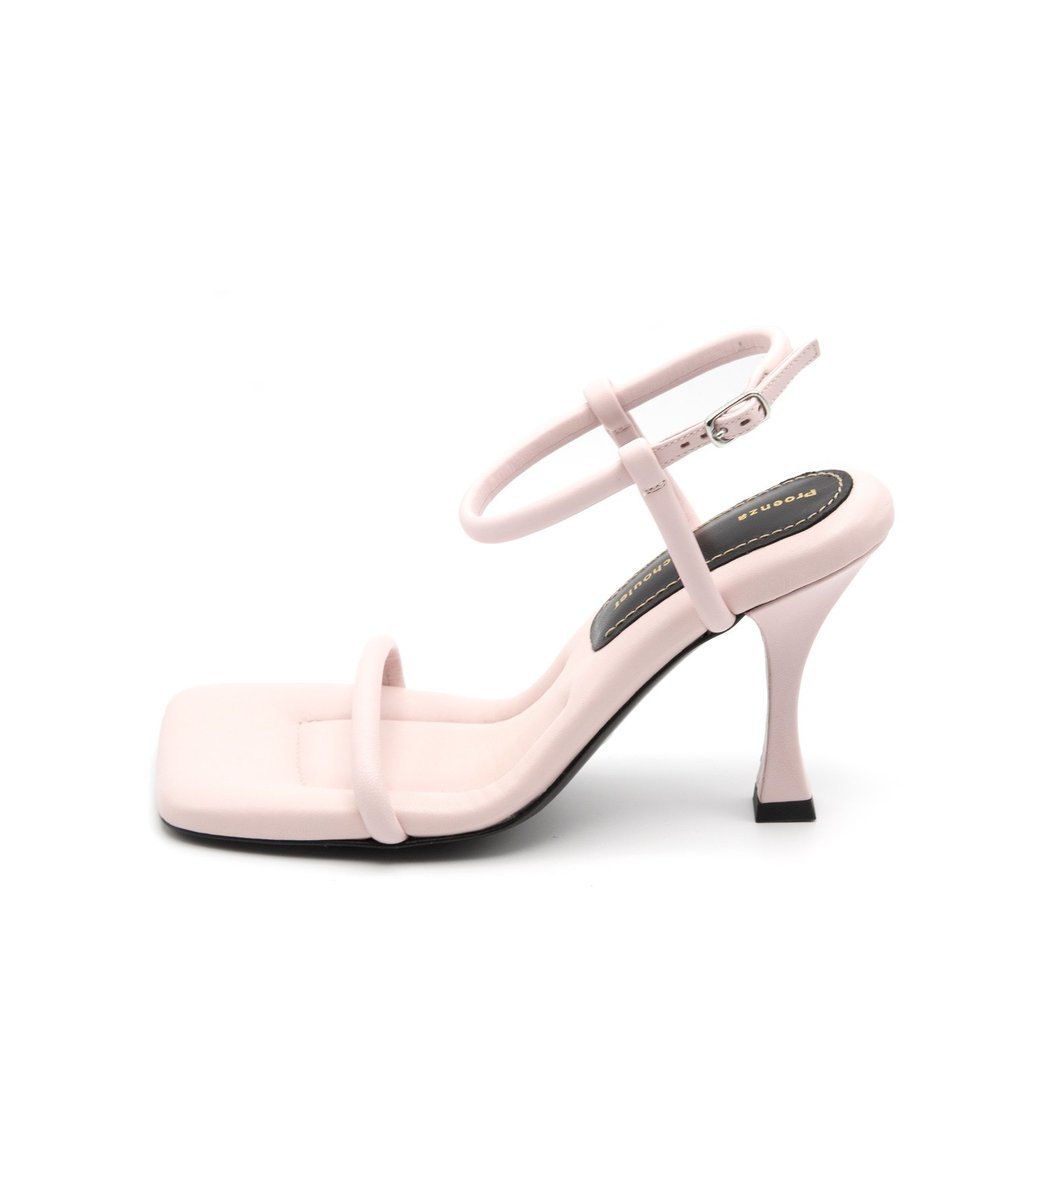 Proenza Schouler Square Padded Sandal in Light Pink